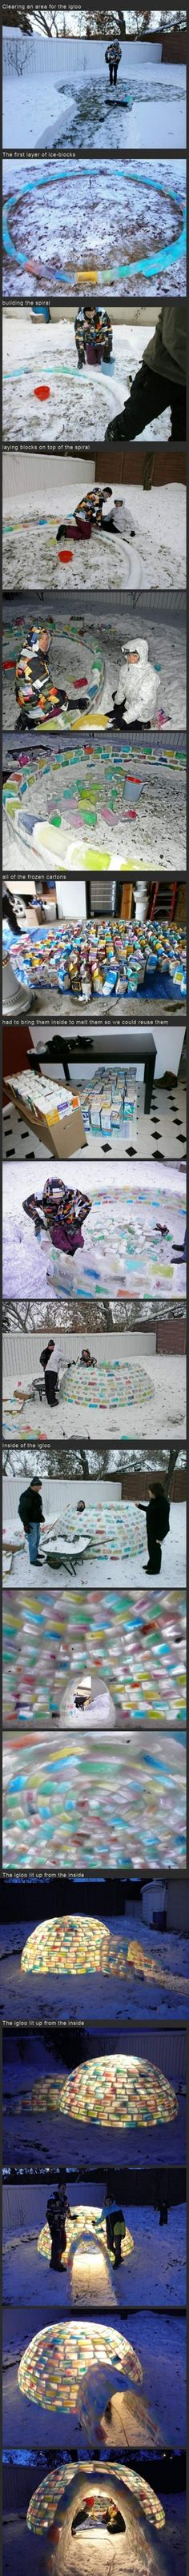 Awesome Igloo